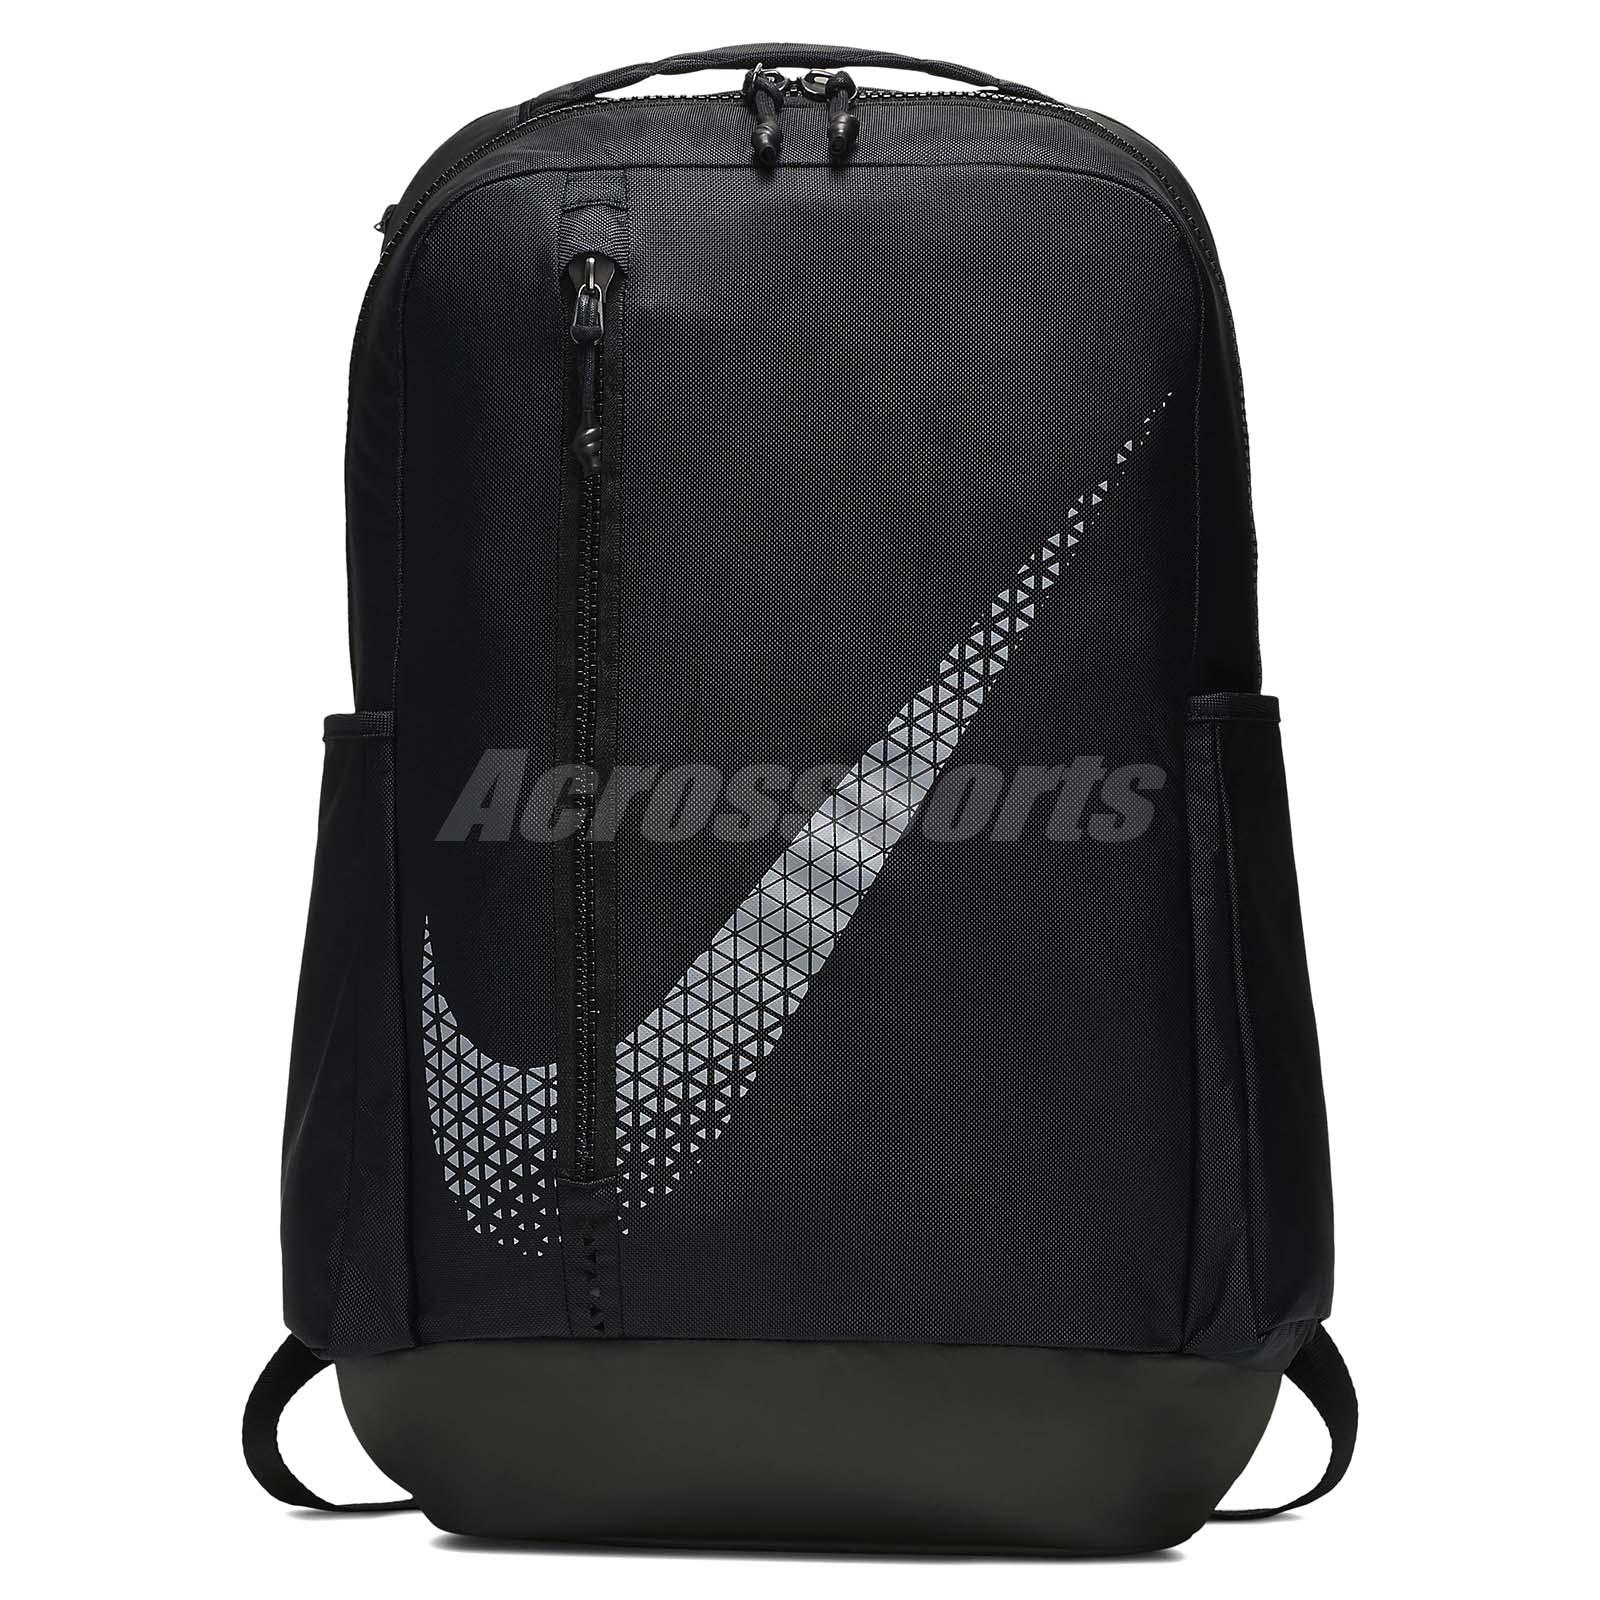 Nike Vapor Power Backpack GFX Training Workout Fitness Sports Black  BA5782-010 3ca4303688be1